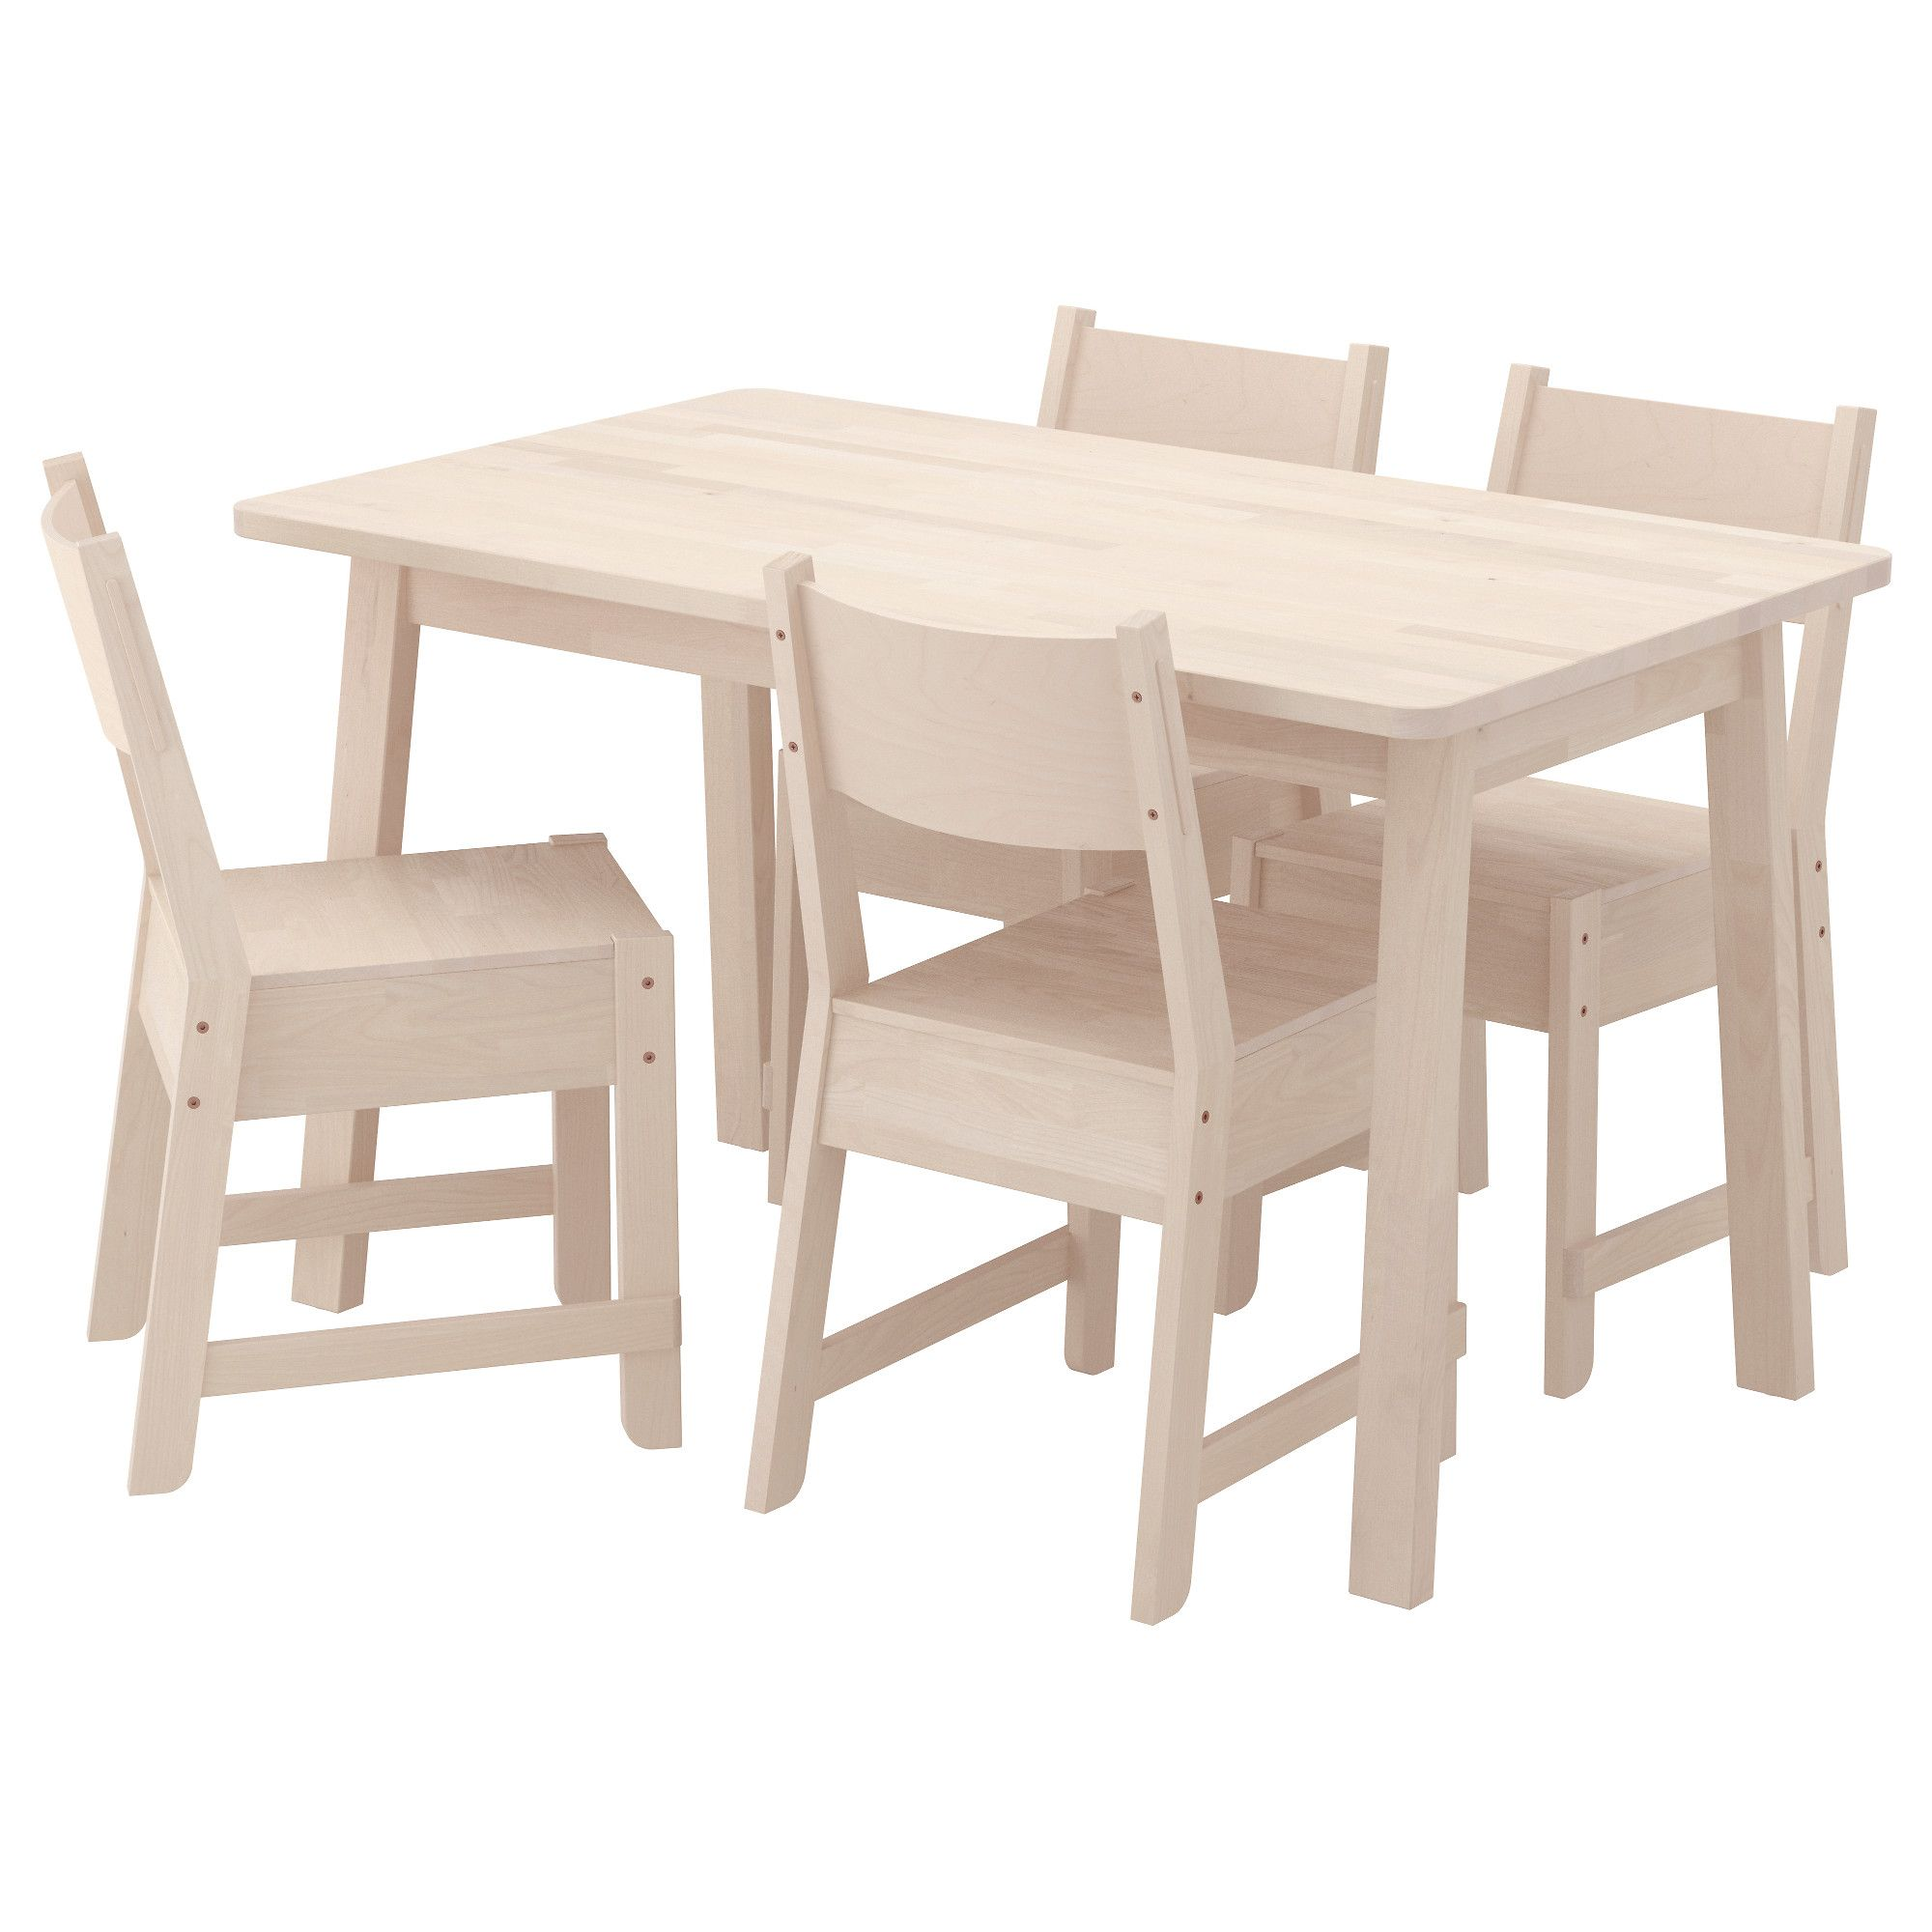 Table Chaises Ikea Furniture And Home Furnishings Products Ikea Table Table